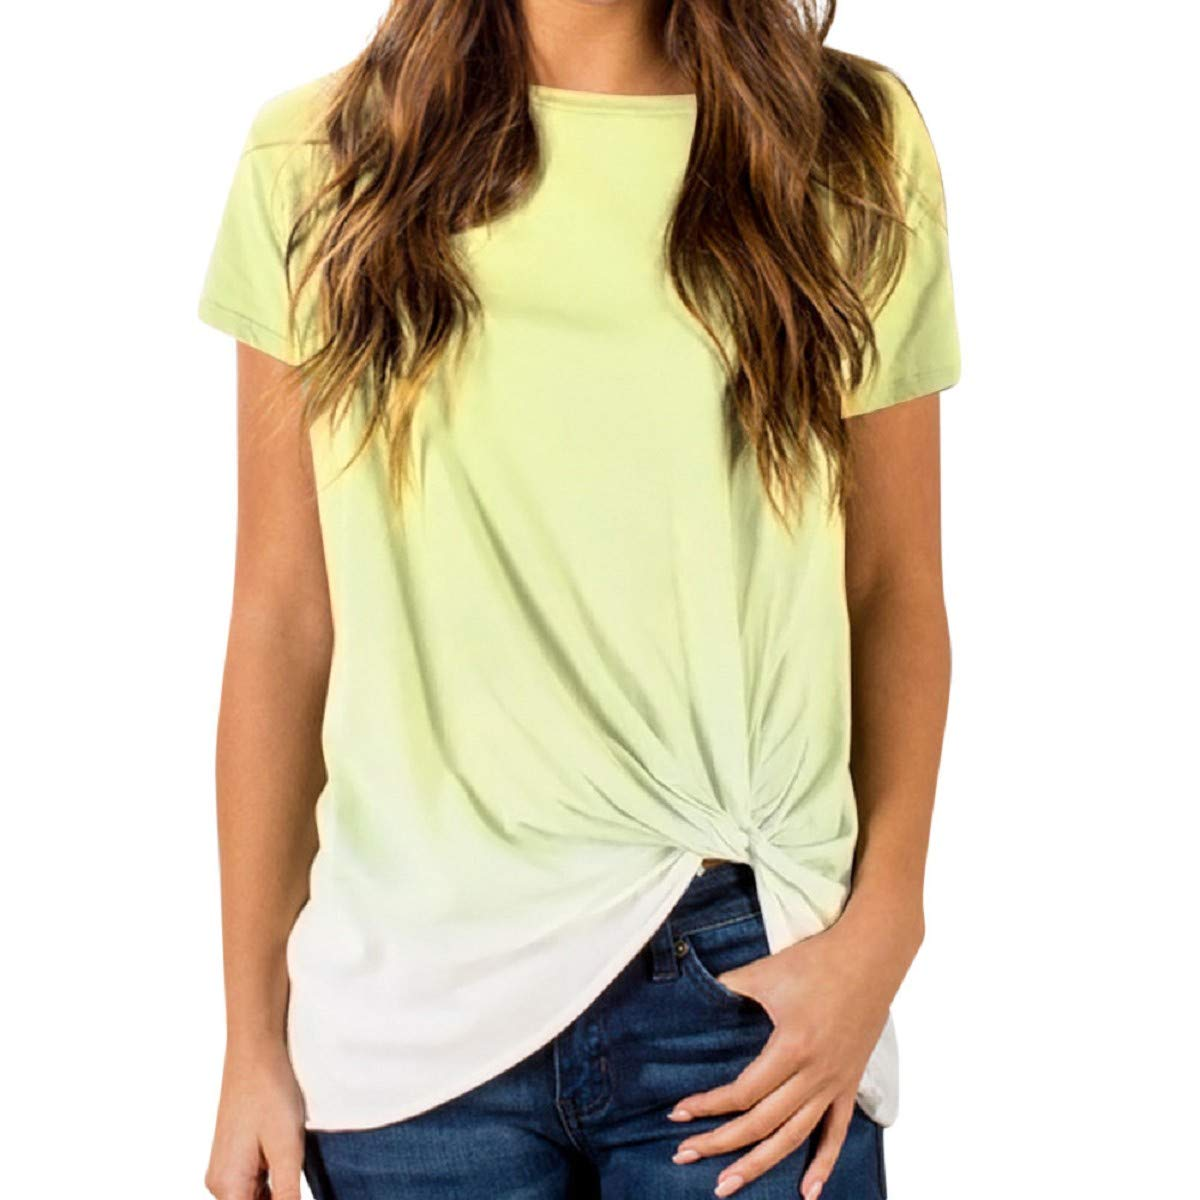 OTINICE Women Summer Tops Short Sleeve Gradient Color Knotted Casual Loose T-Shirt Blouse Yellow